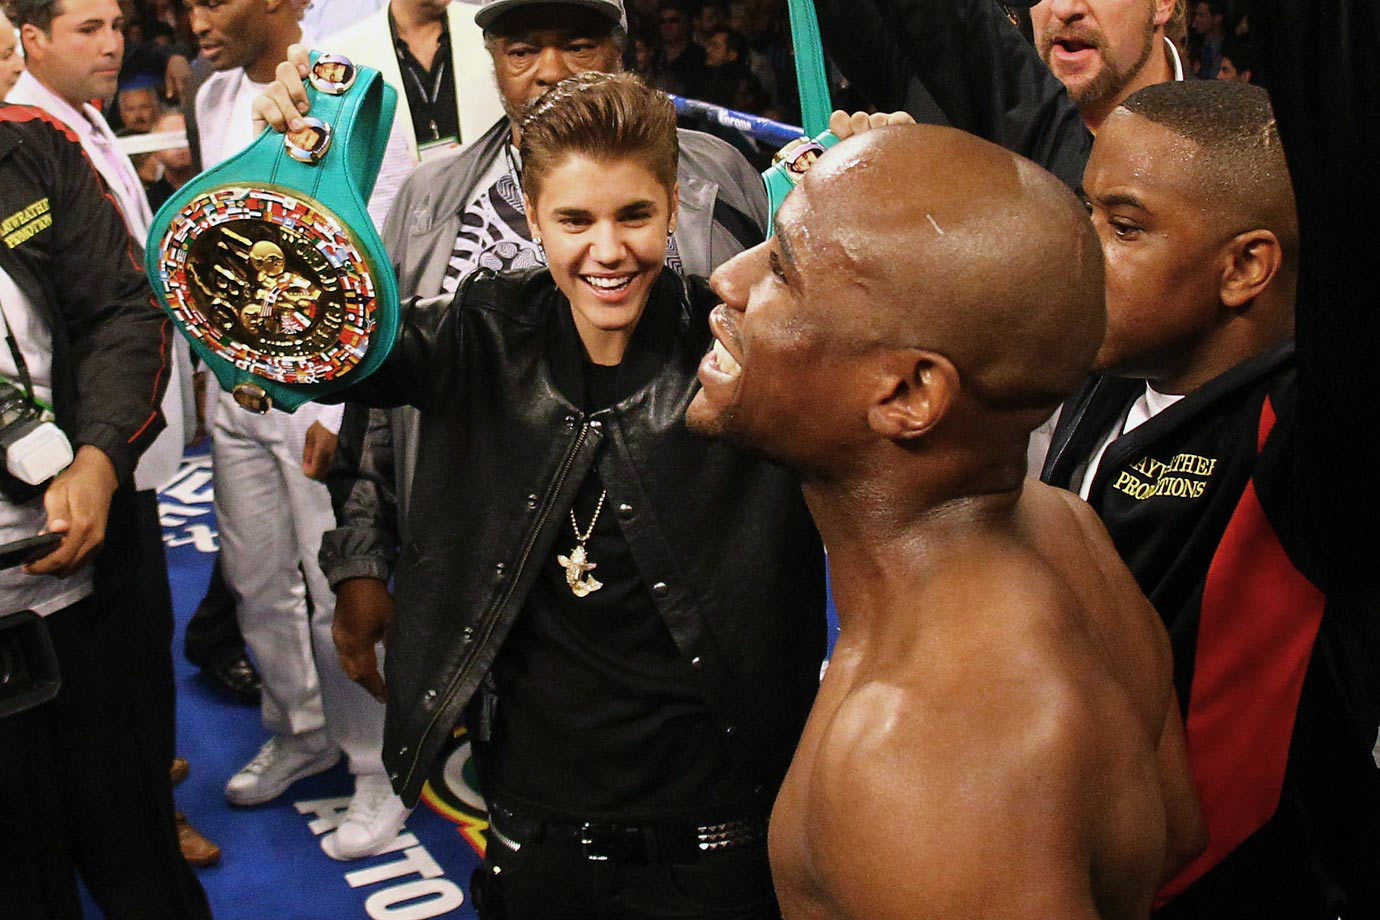 Justin Bieber holds up Floyd Mayweather Jr.'s title belts before Mayweather's WBA super welterweight title fight against Miguel Cotto on May 5, 2012 at the MGM Grand Garden Arena in Las Vegas.